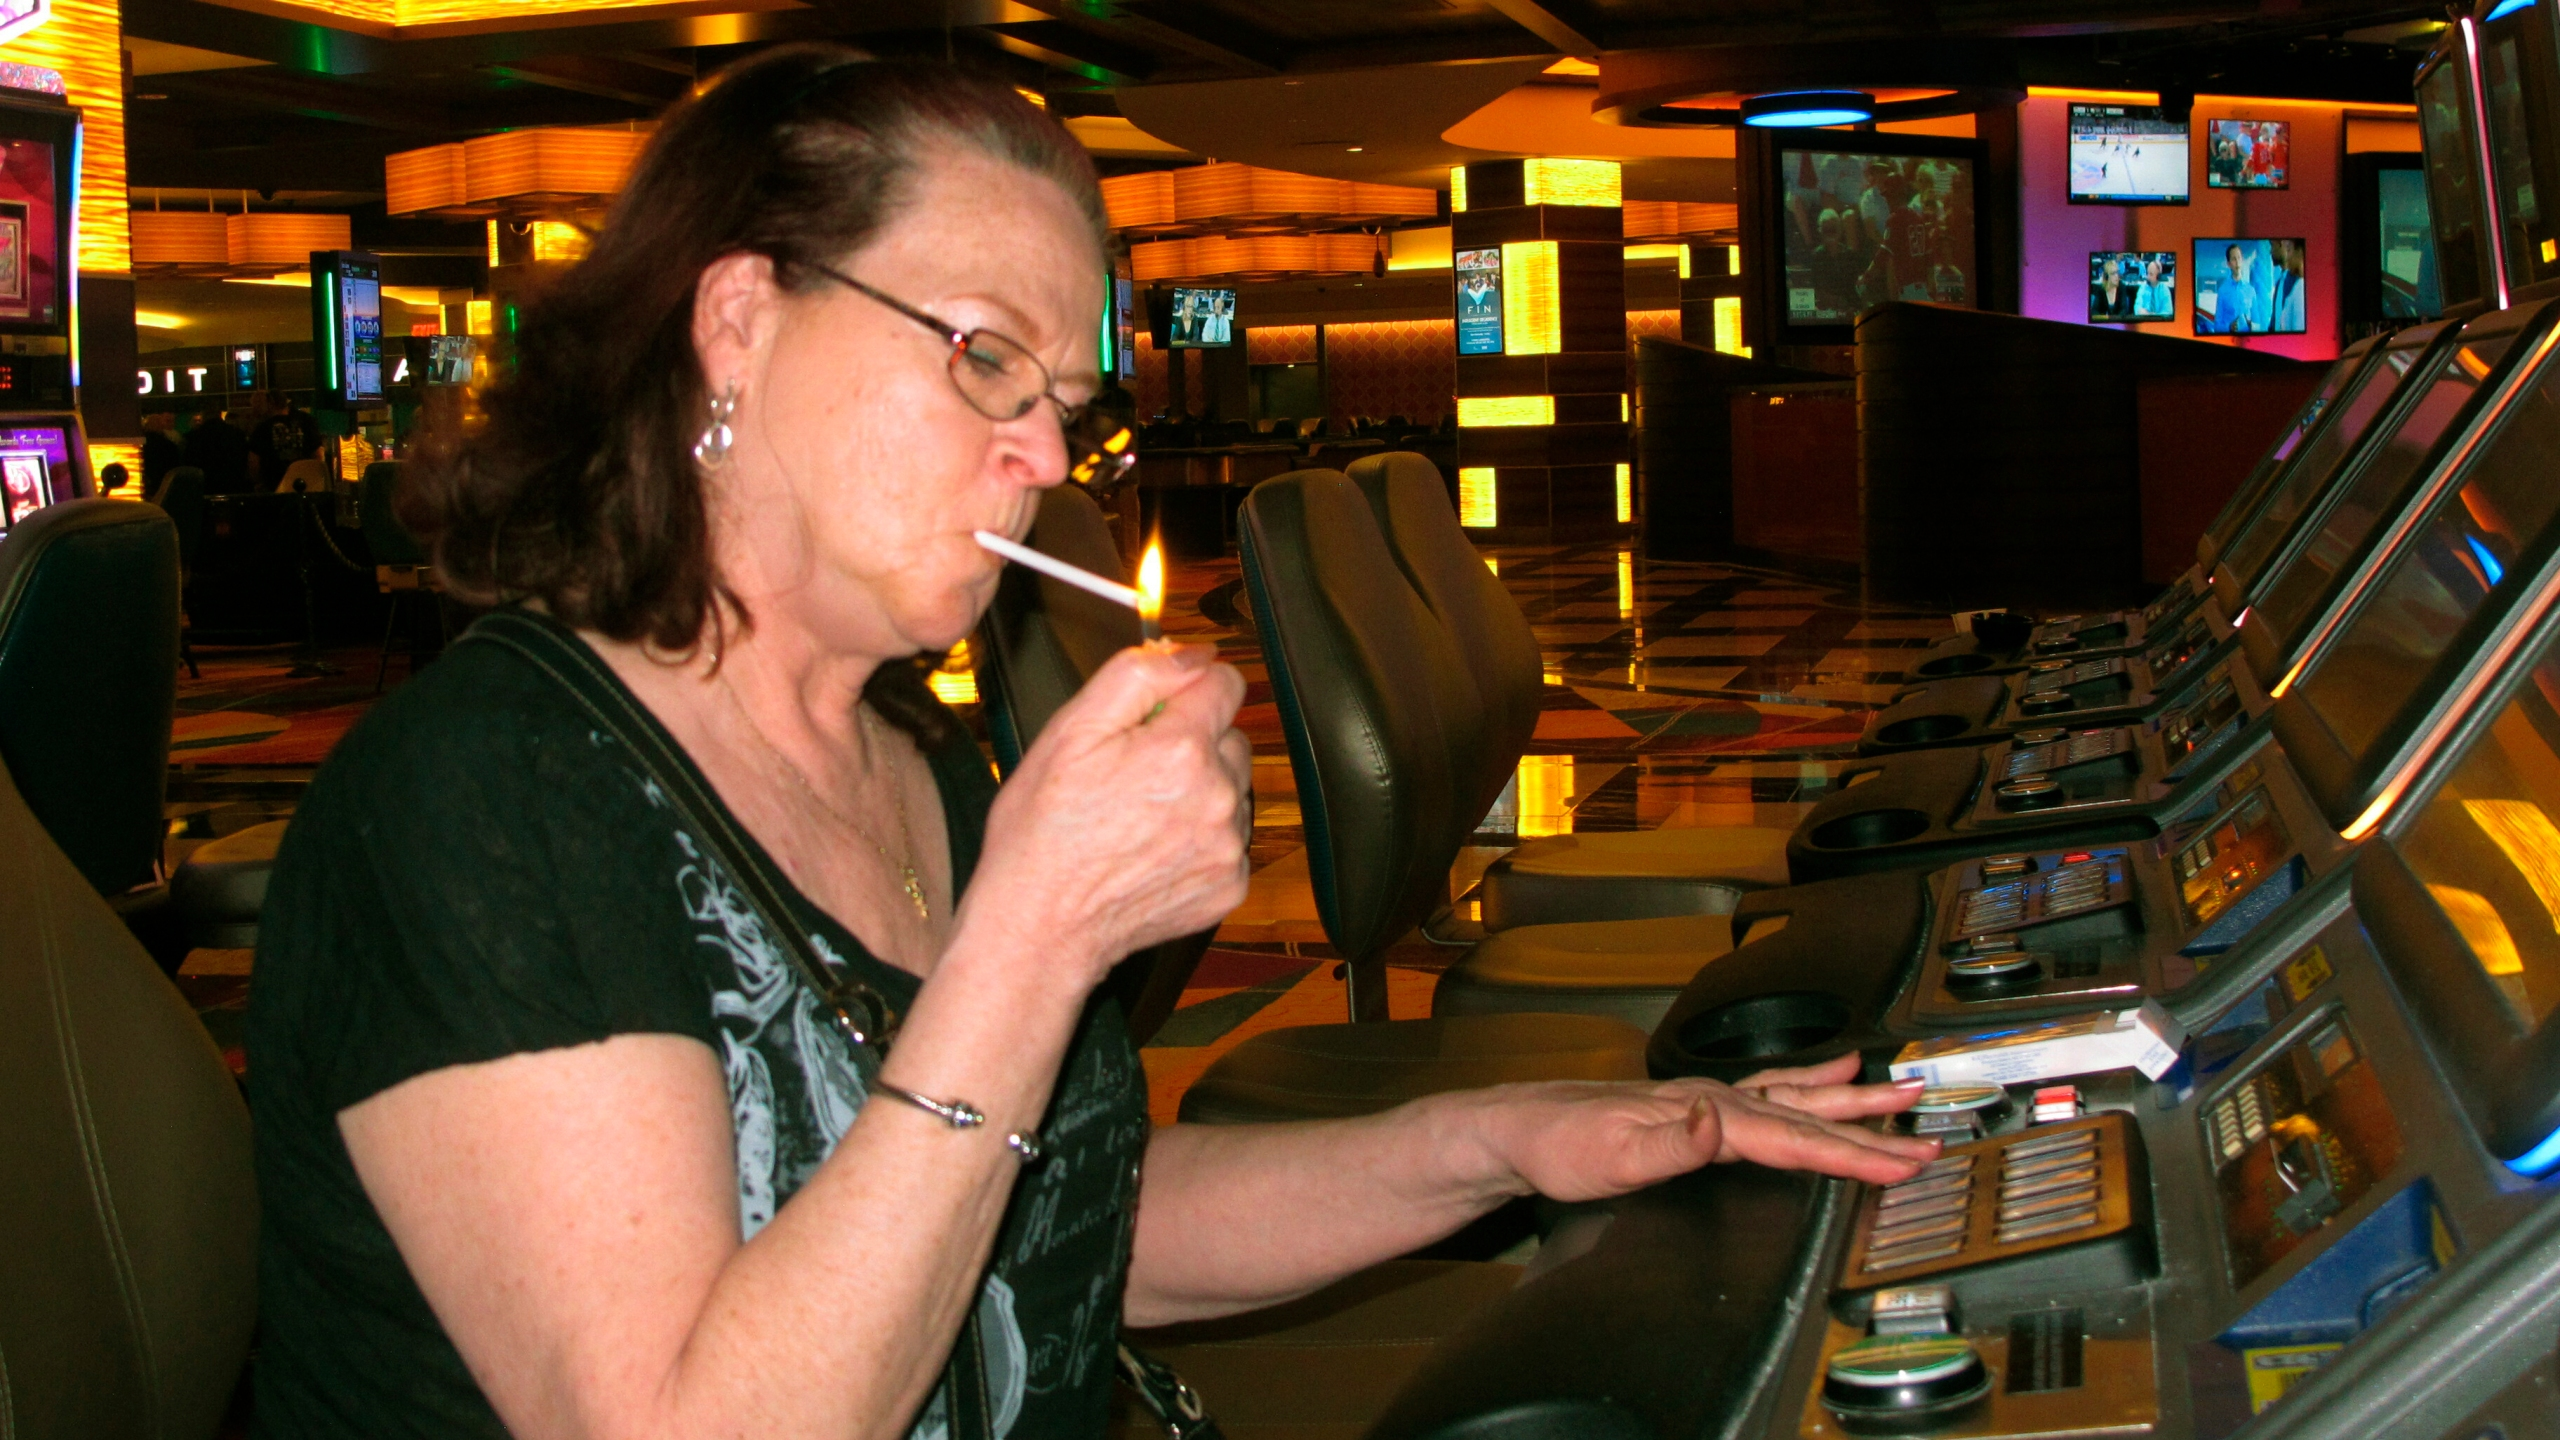 NJ casino patron lights cigarette